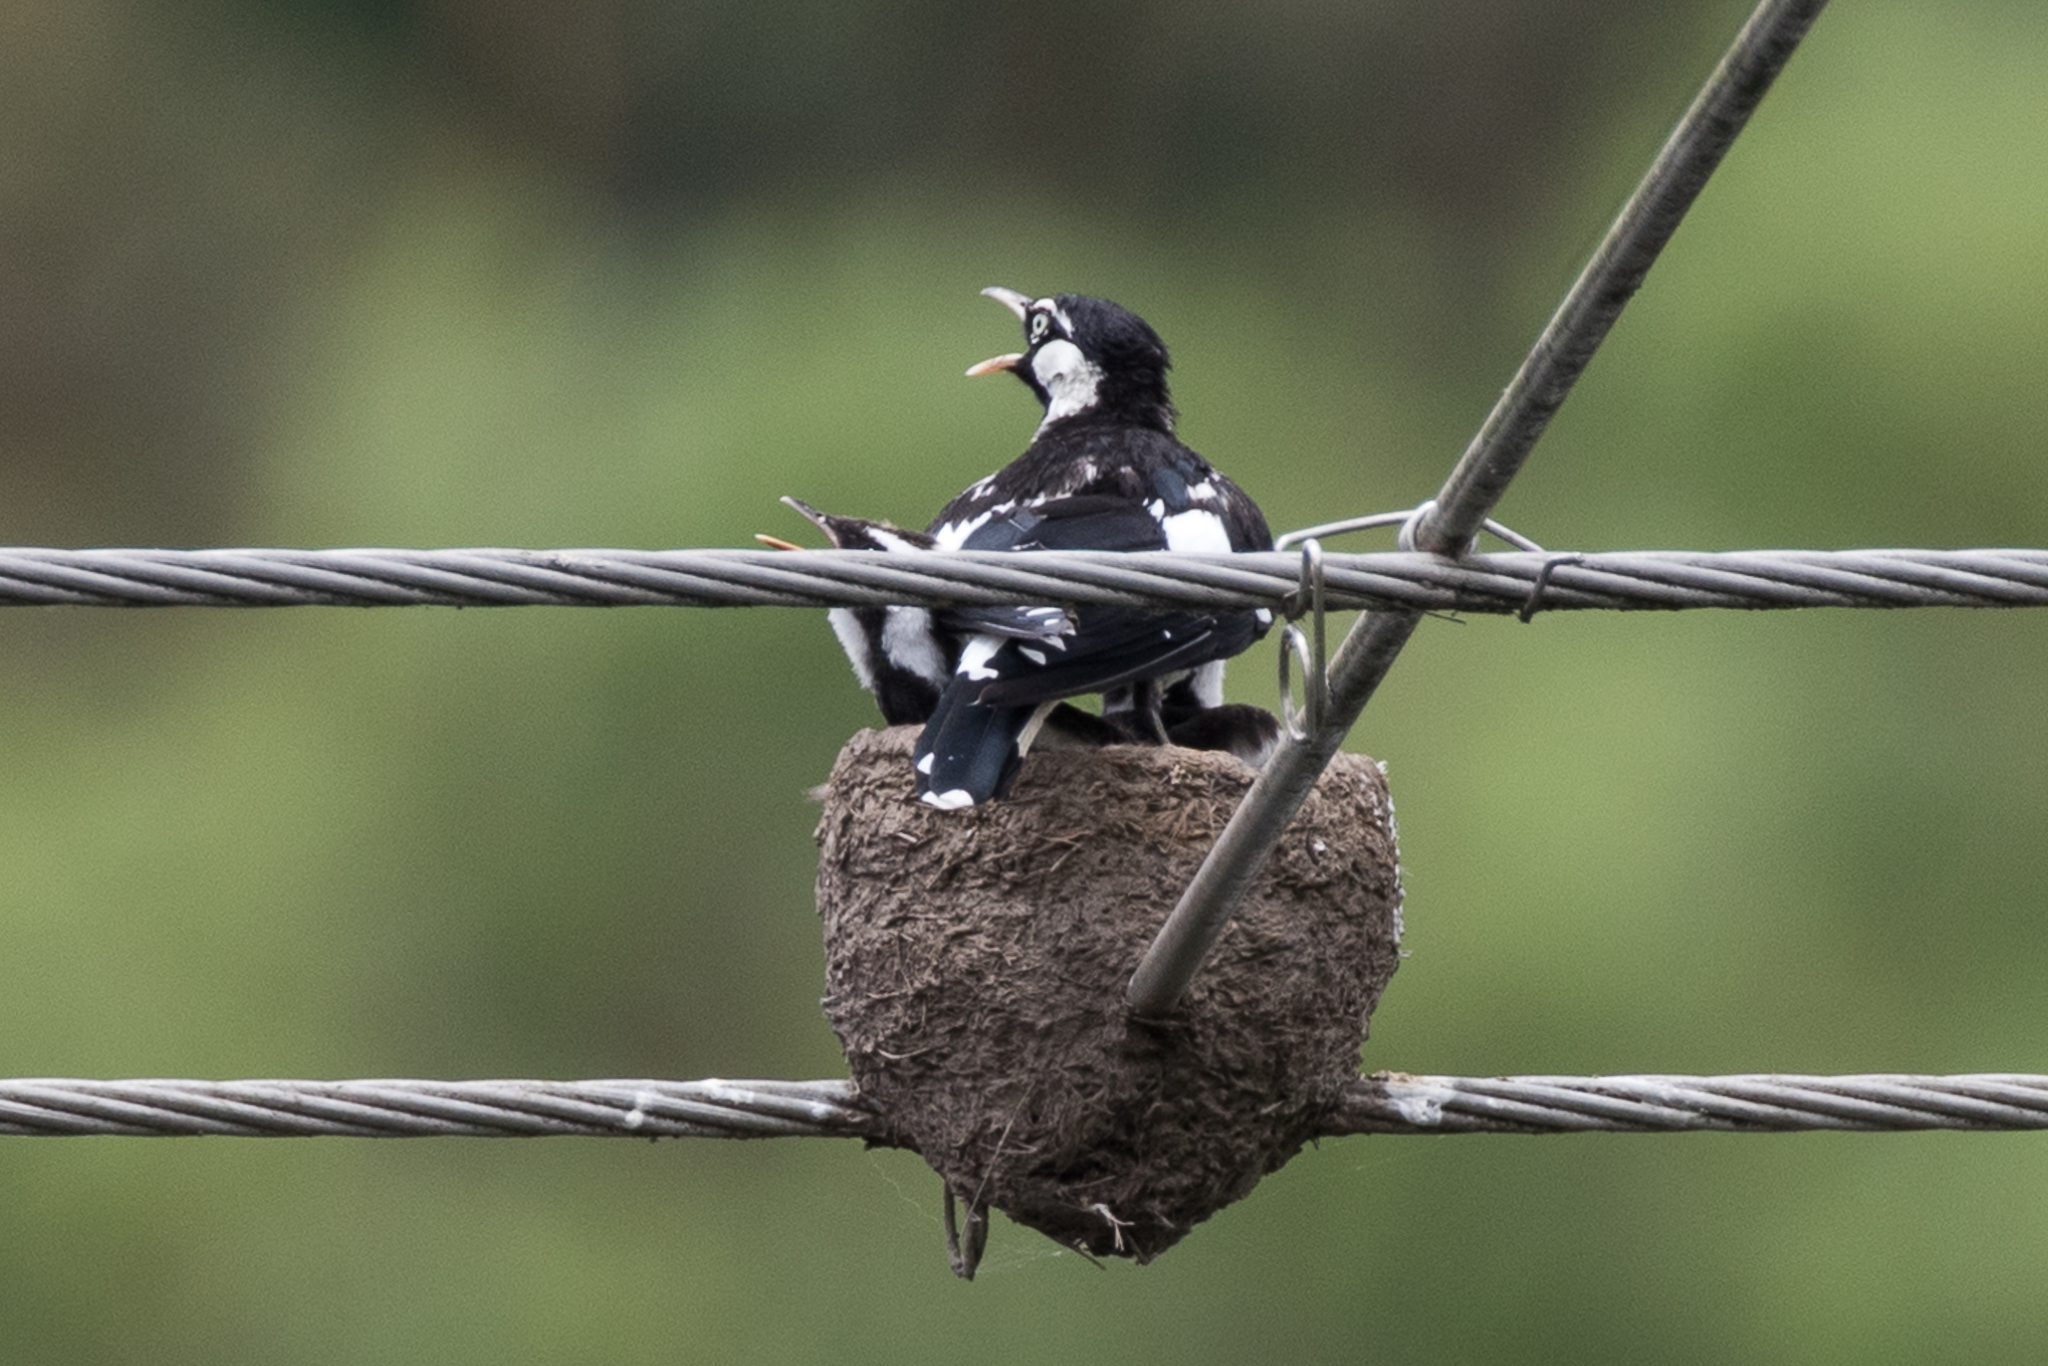 Another common bird in city and bush, these Magpie-larks successfully raise a family in this unusual nesting spot!